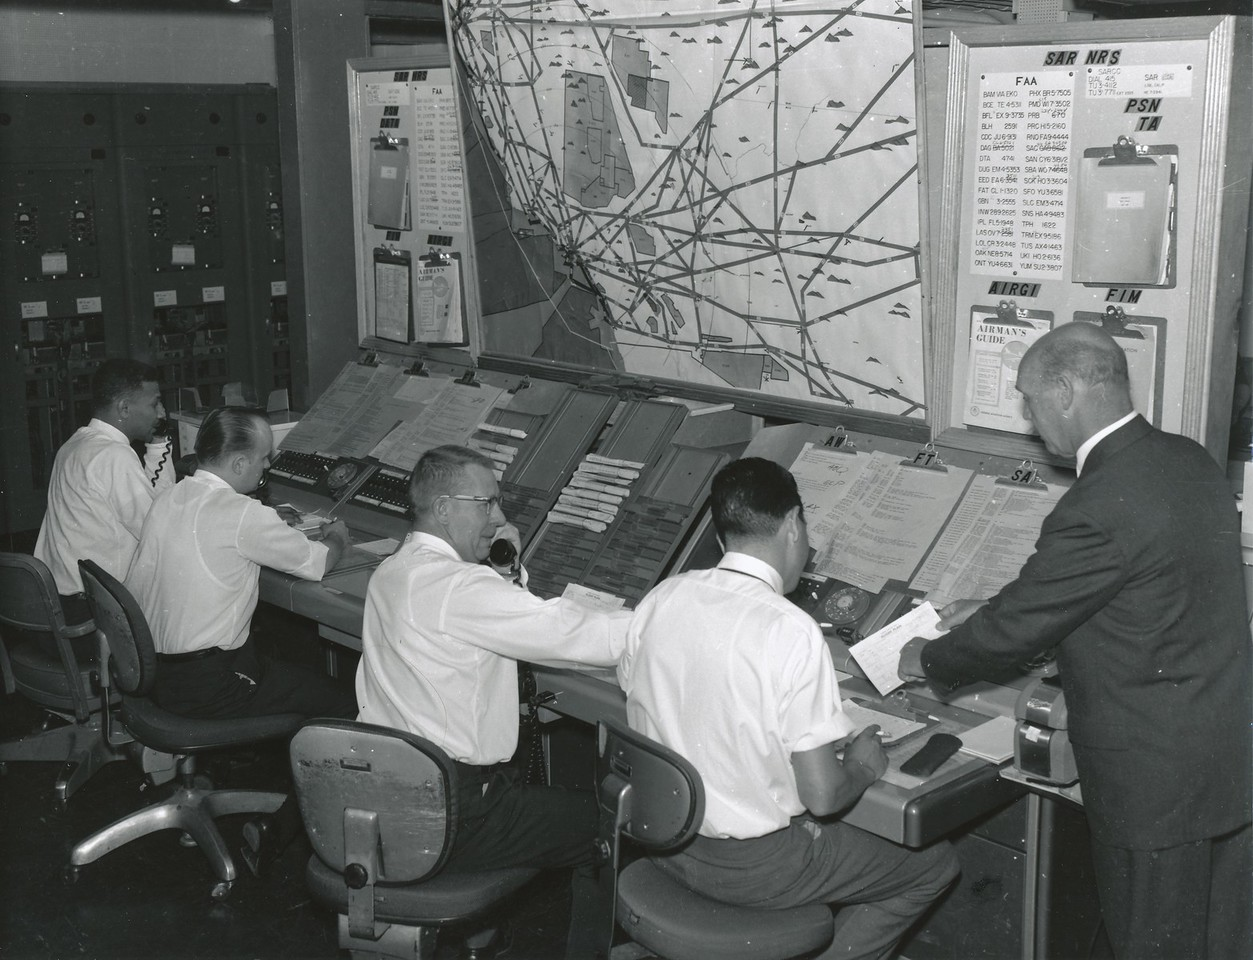 AIR TRAFFIC CONTROL - 1956<br /> <br /> Los Angeles Center handled both flights until they crossed the Colorado River into Arizona. The flights were then monitored by by either Denver or Salt Lake City Air Traffic Control (ATC).<br /> <br /> There was no ATC radar coverage across most of the U.S. in 1956. Commercial airliners would report positions to controllers and estimate their time to the next position. (LostFlights Archive Photo)